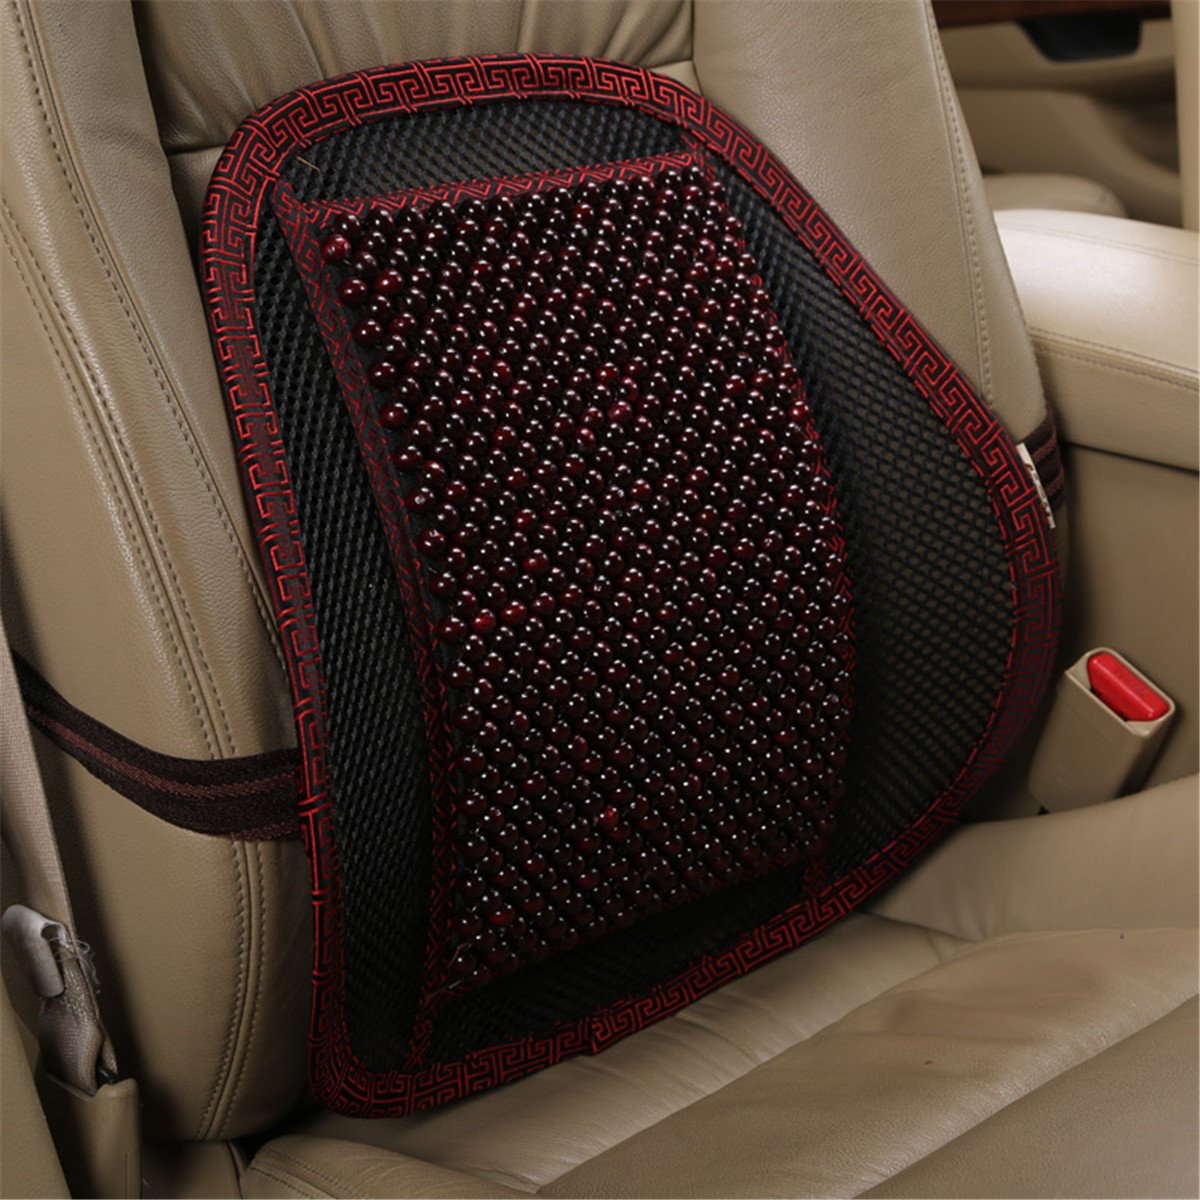 INCH EMPIRE Lumbar Support Wood Beads Massage Pillow Cushion with Strap - Summer Cool Winter Warm Back Pillow for Car Seat,Office and Home Chair by INCH EMPIRE (Image #1)